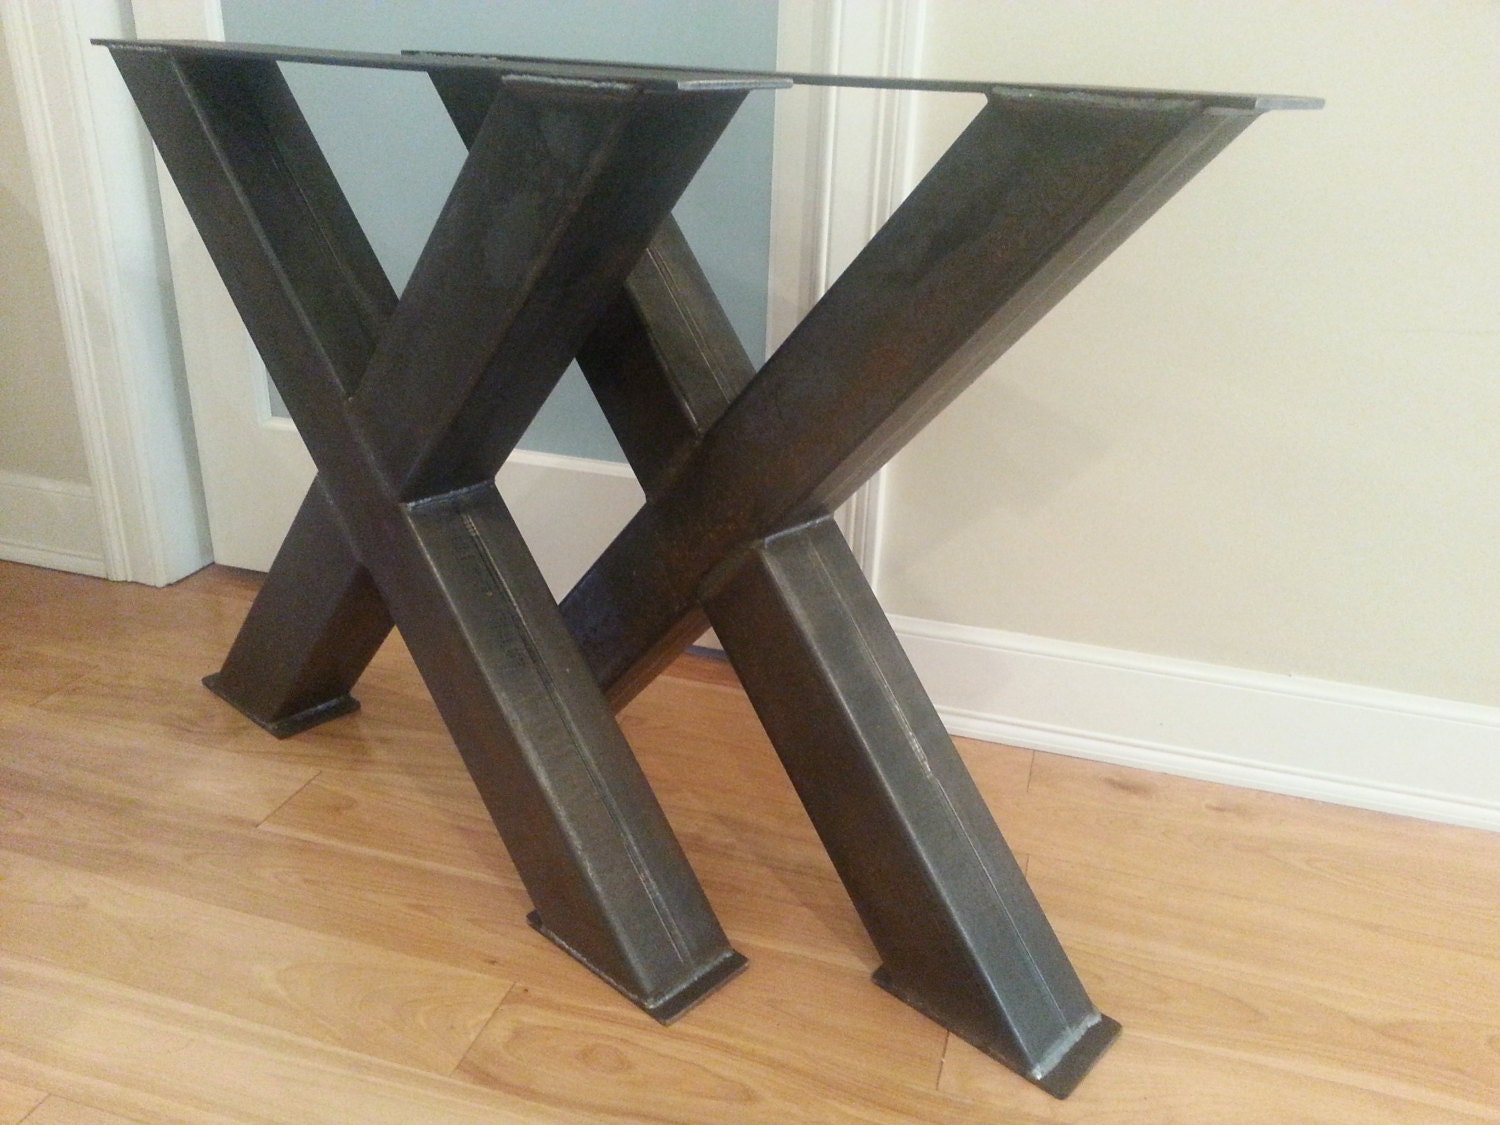 metal table legs 4 steel table legs oversize x metal. Black Bedroom Furniture Sets. Home Design Ideas